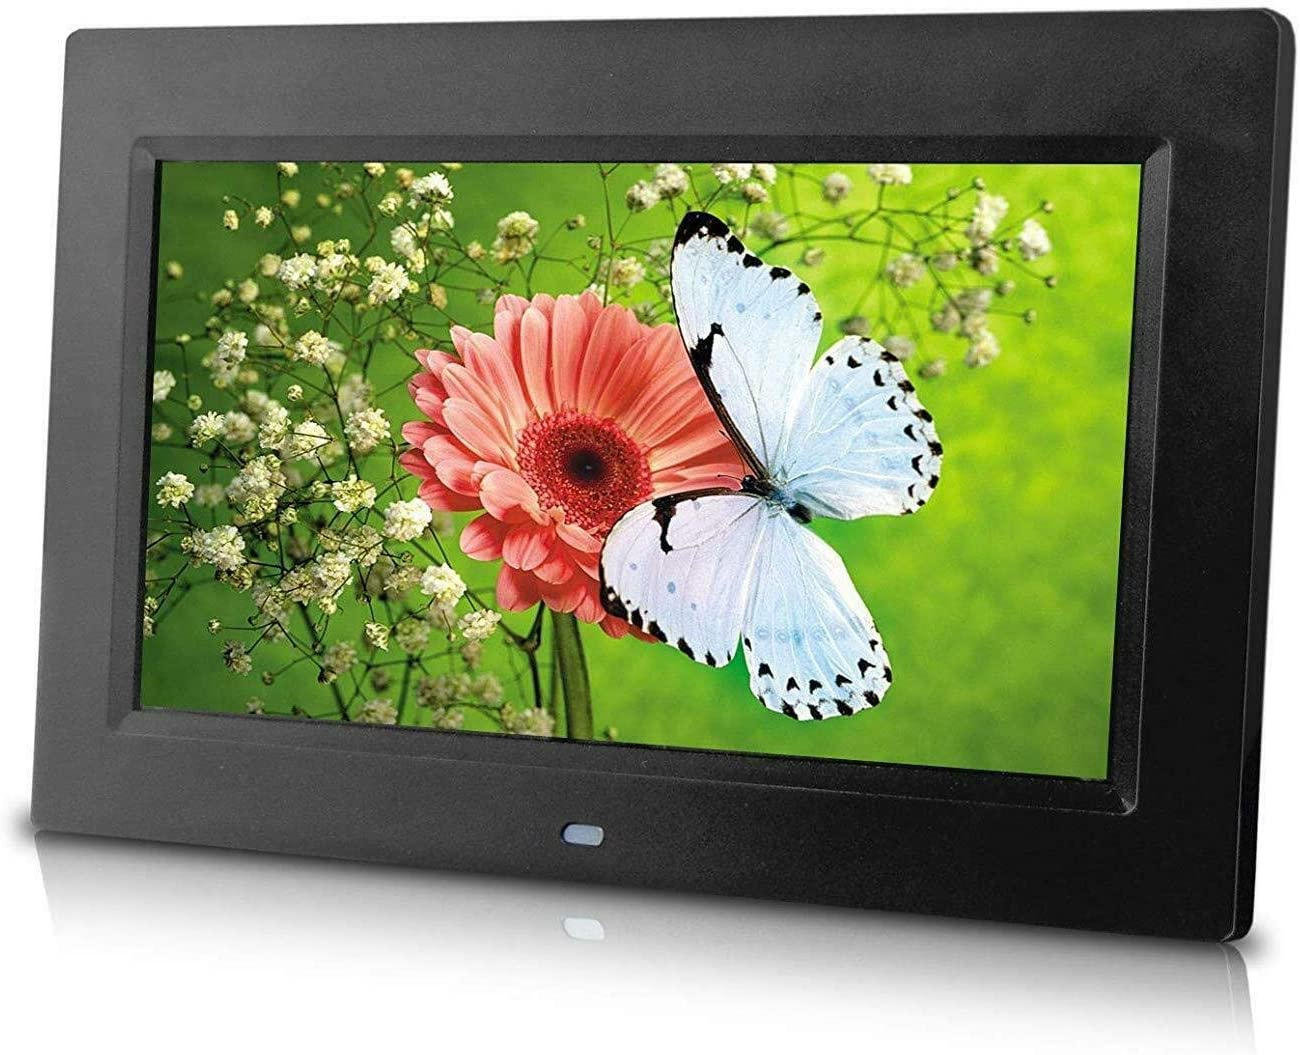 10 inch Digital Photo Frame with Remote Control, High Resolution 1024x600 Wide LCD Screen, Auto Slideshow & Adjustable Interval, Wall-mountable, Plug and Play 71q691SFEzL